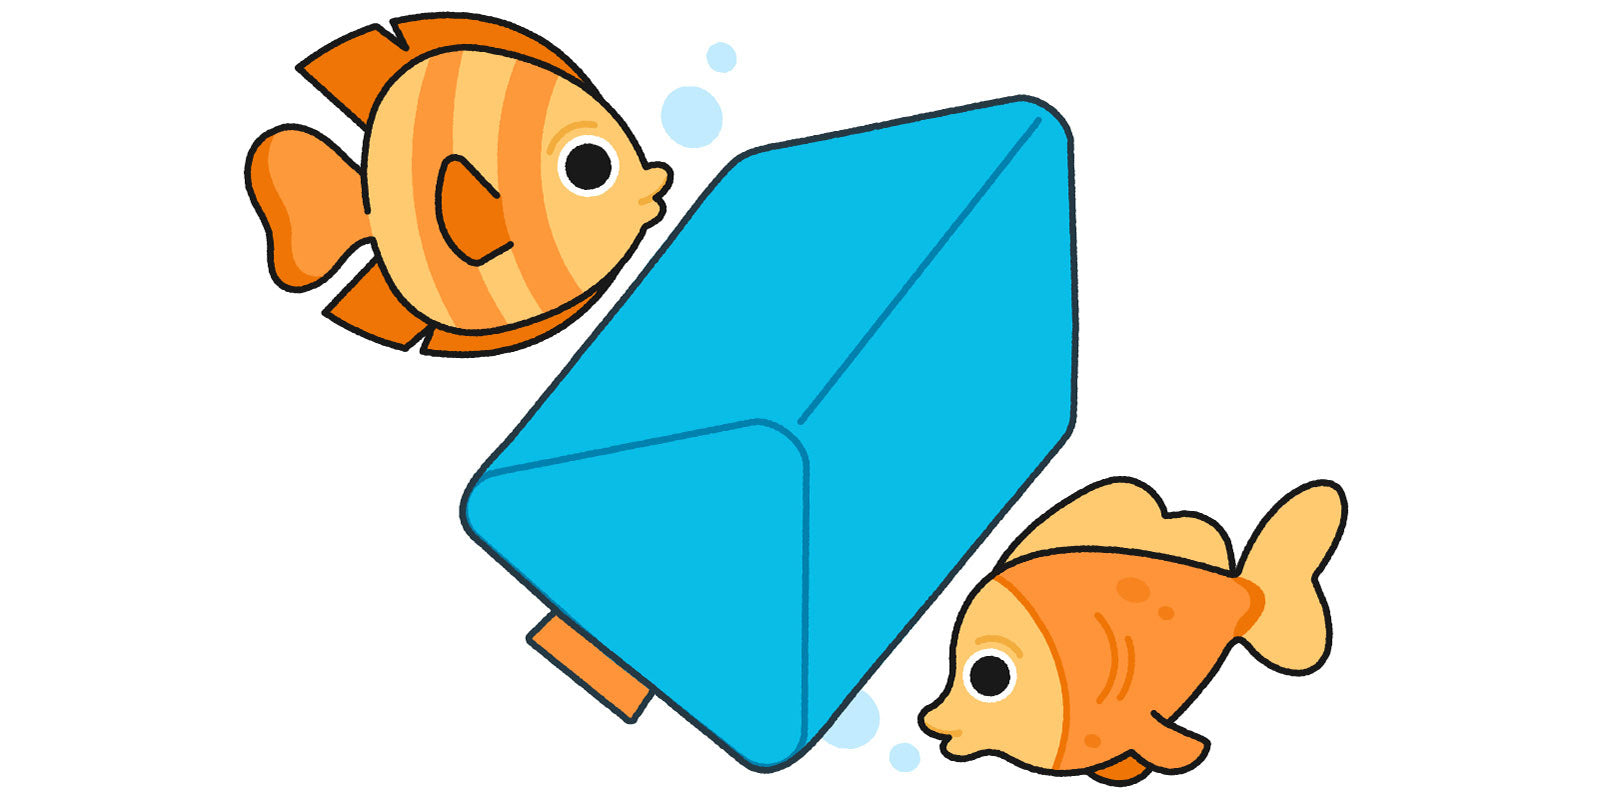 Illustrated Nugget pillow next to fish